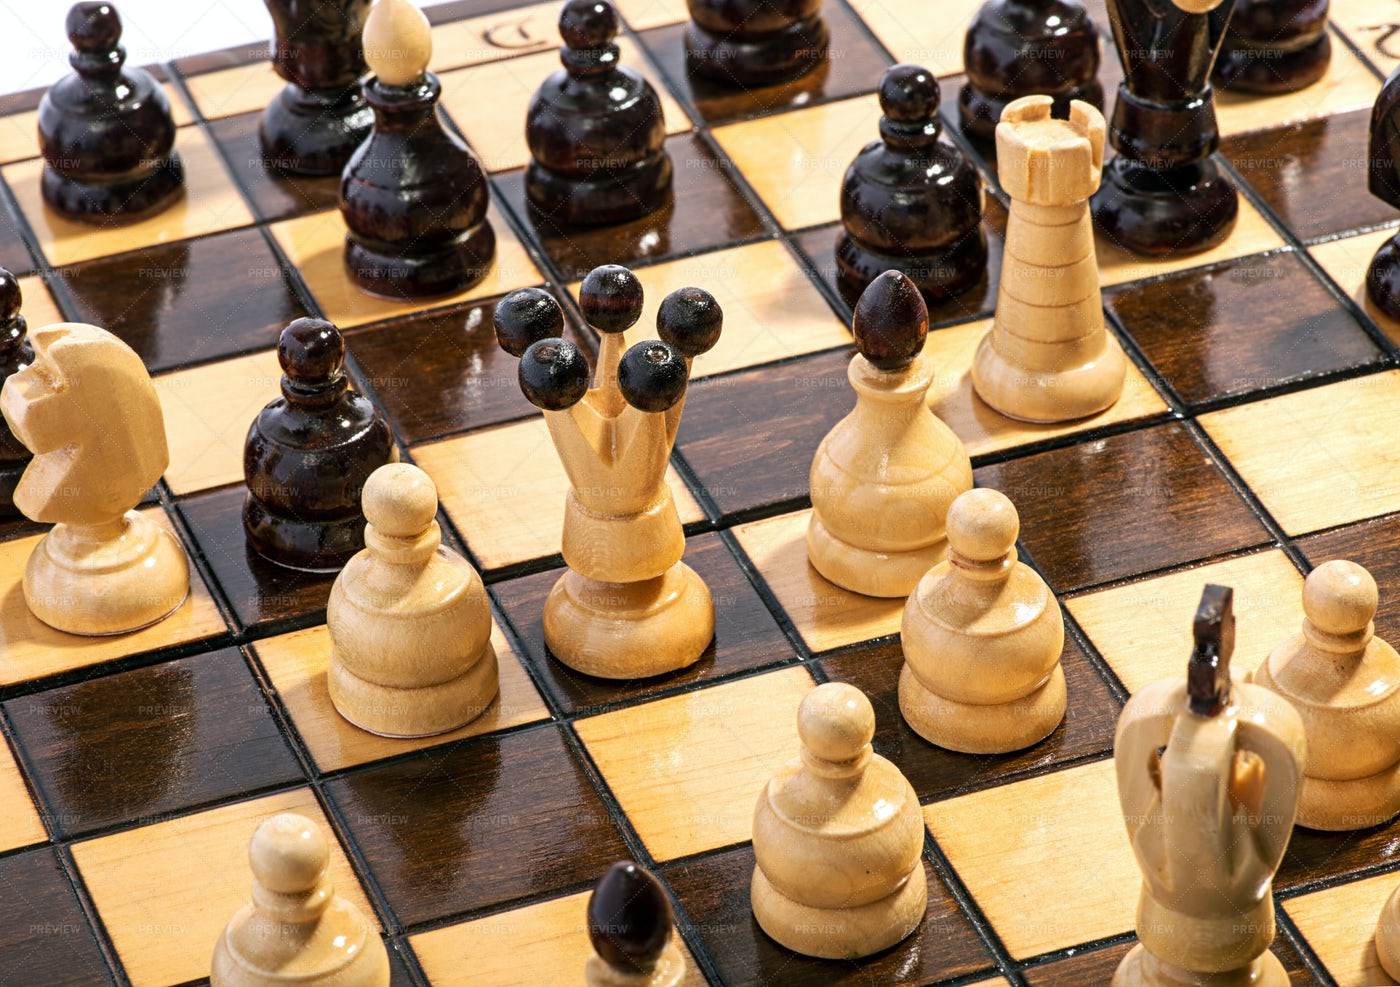 Chess Pieces On Board: Stock Photos